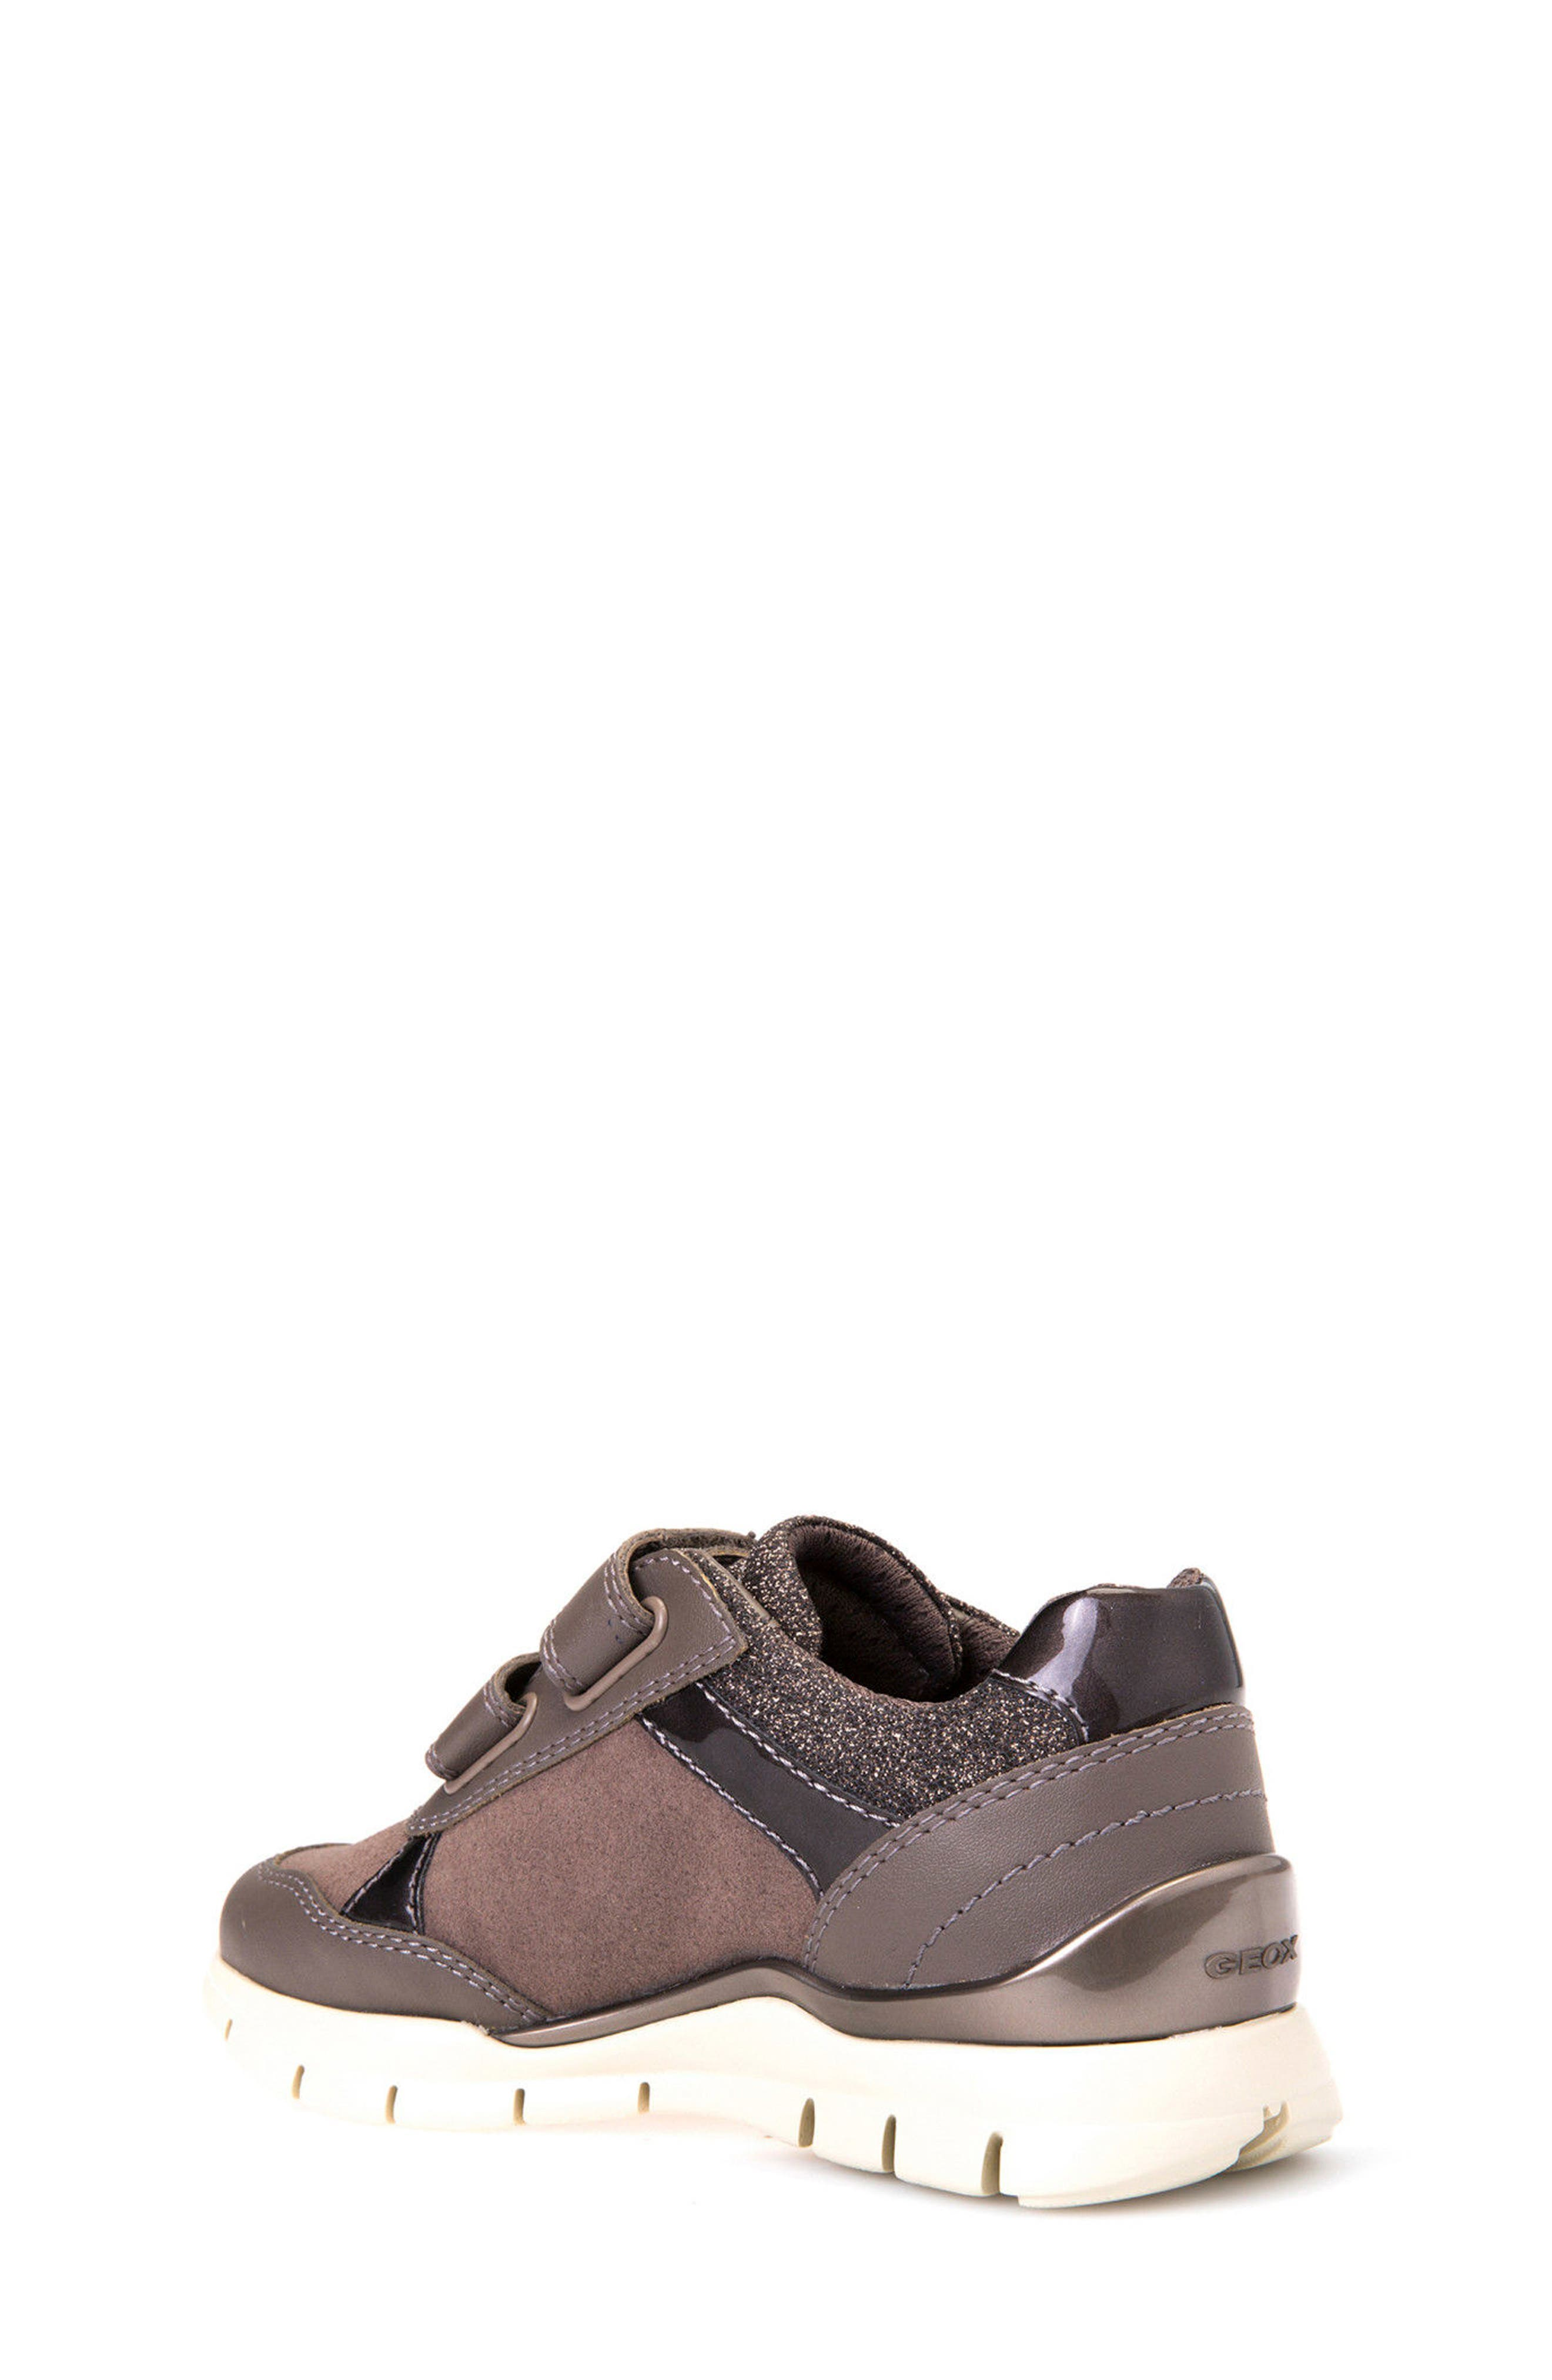 Sukie Sneaker,                             Alternate thumbnail 2, color,                             Dark Beige